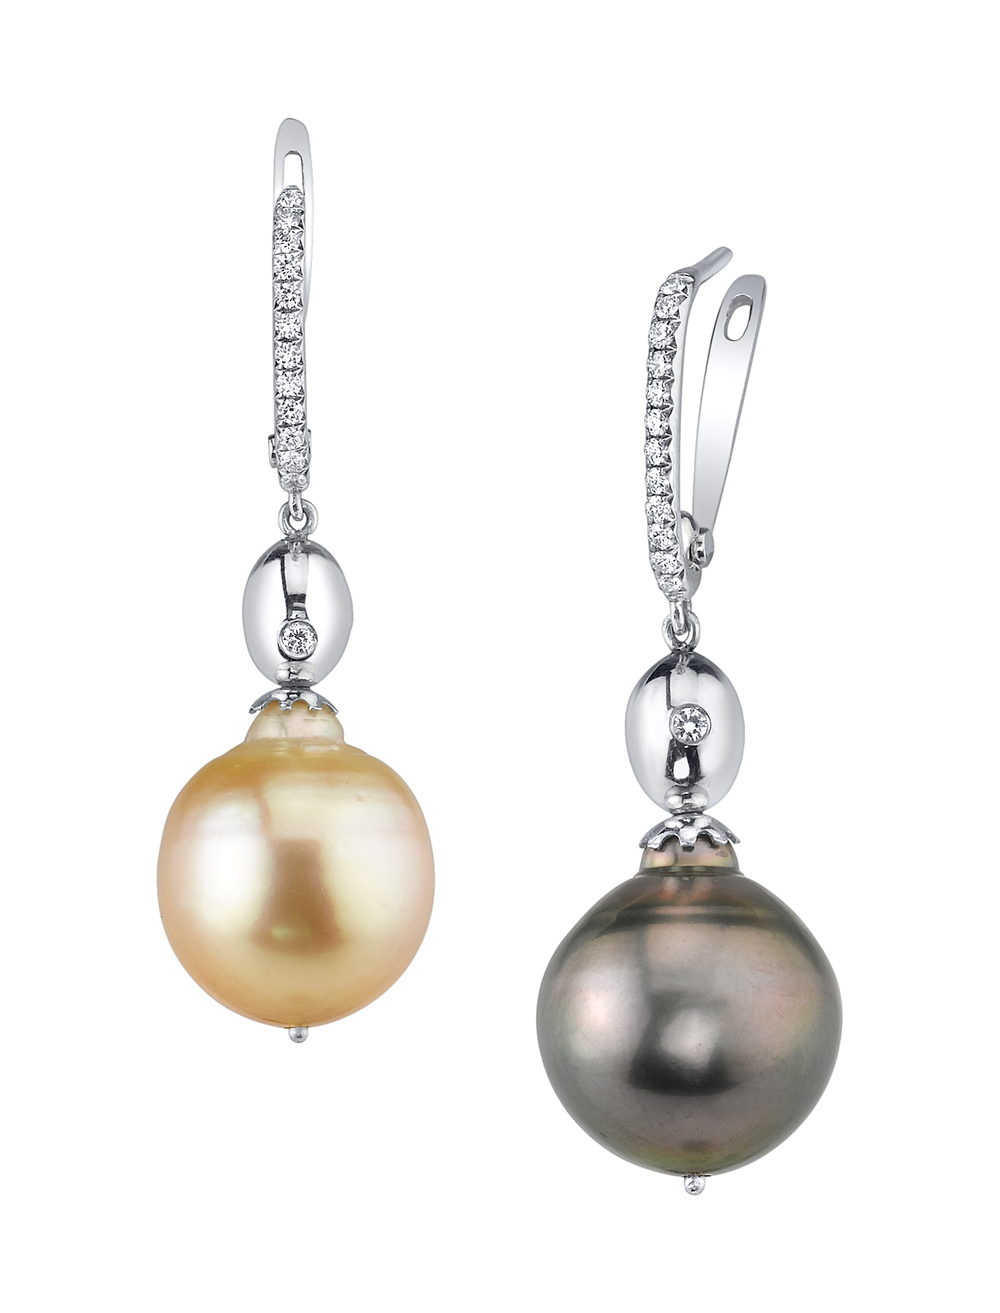 South Sea Day and Night Pearl Earrings, 18 Karat White Gold, accented with White Diamonds